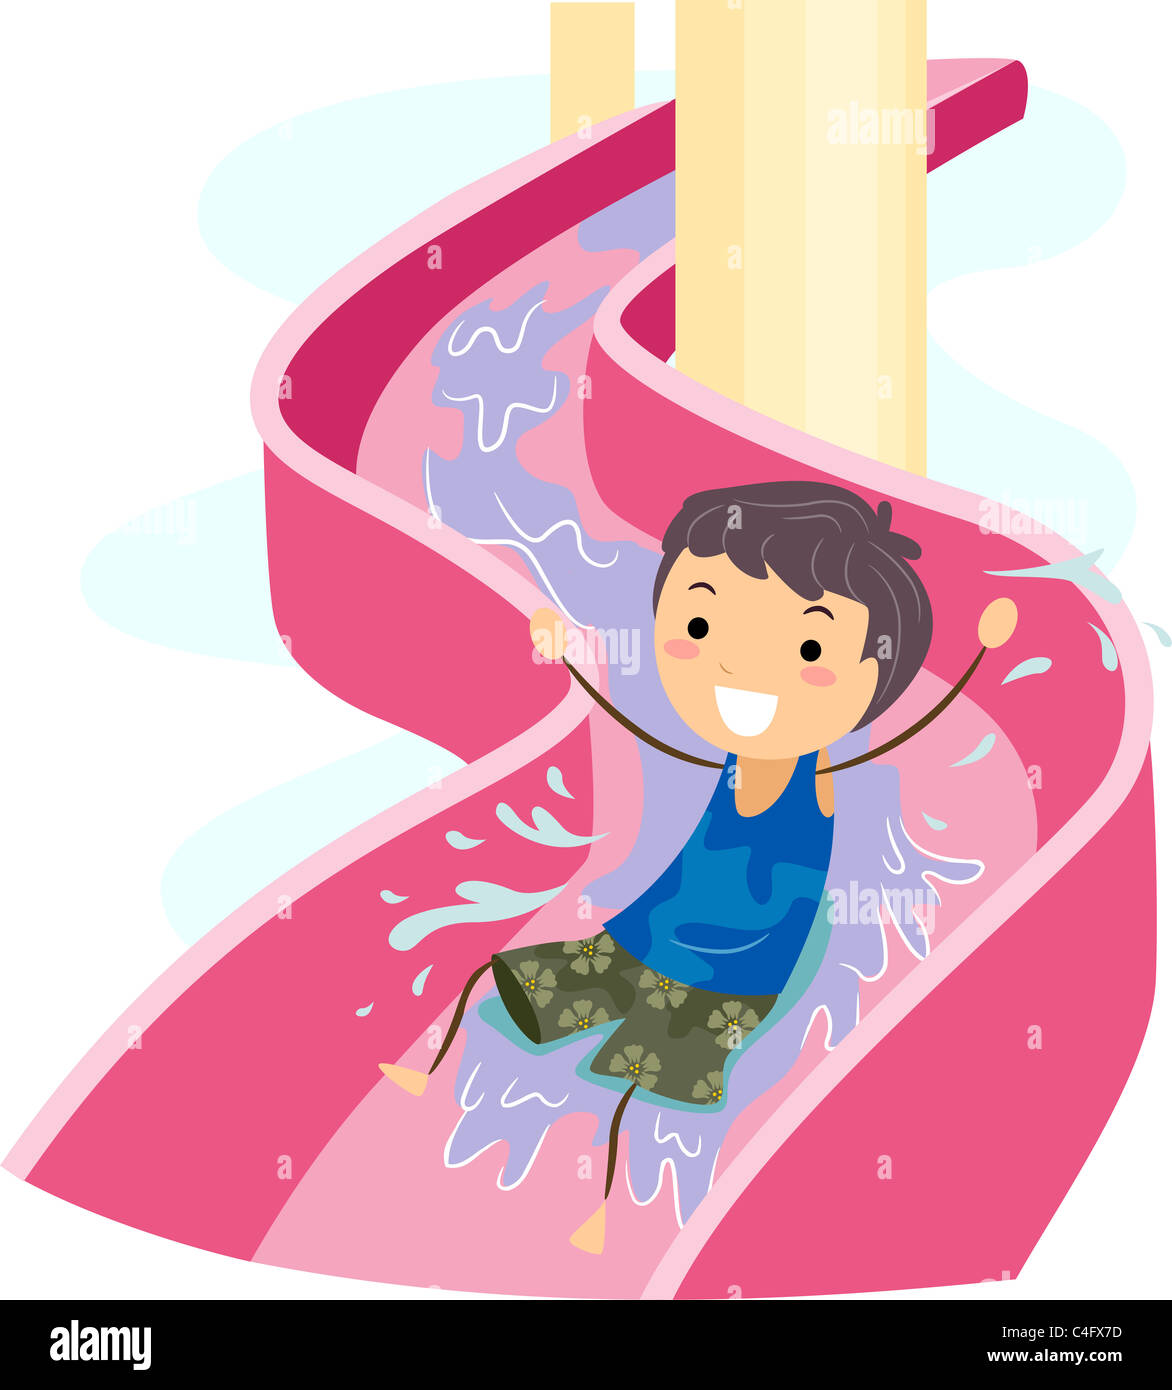 Rutsche Clipart Illustration Of A Kid On A Water Slide Stock Photo